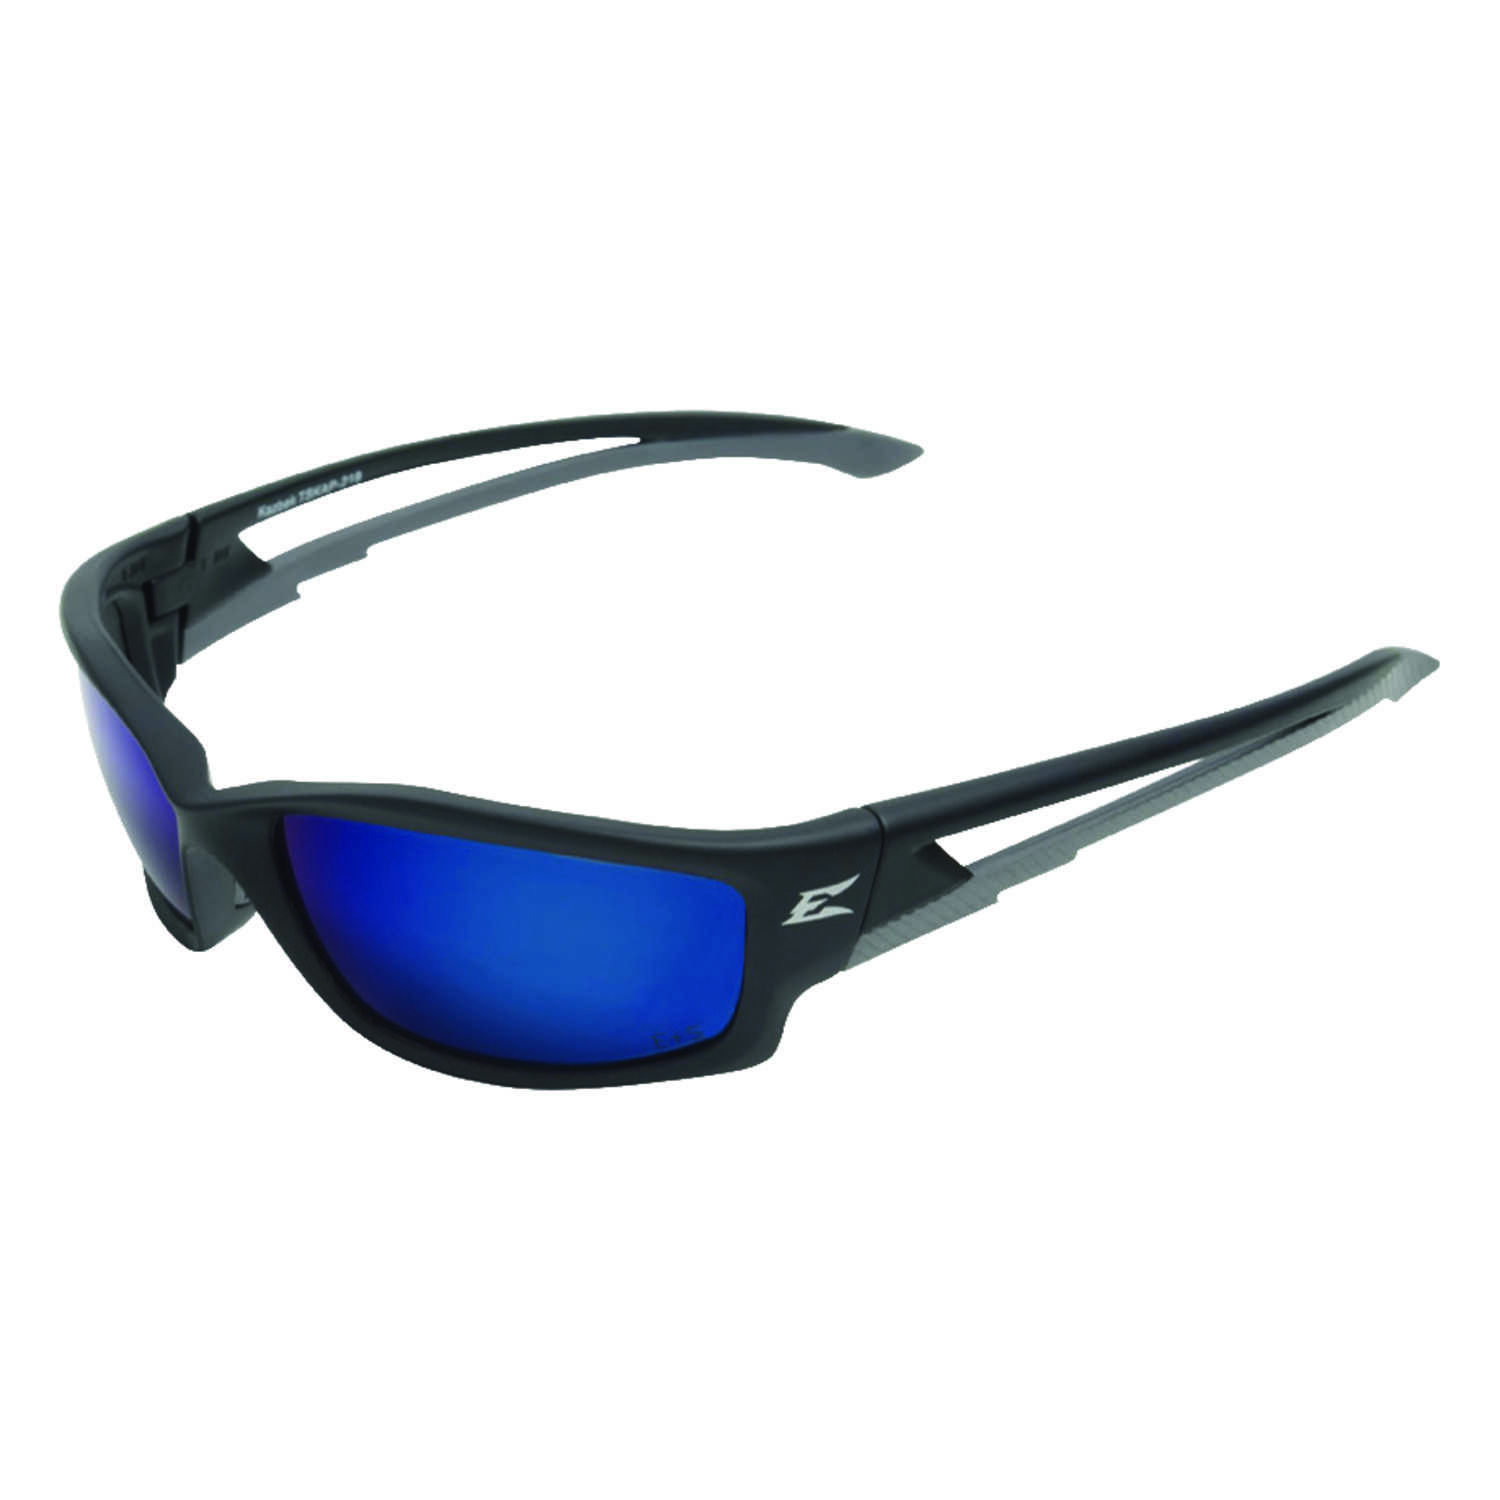 Edge Eyewear  Kazbek  Blue Lens Black Frame 1 pc. Polarized Safety Glasses